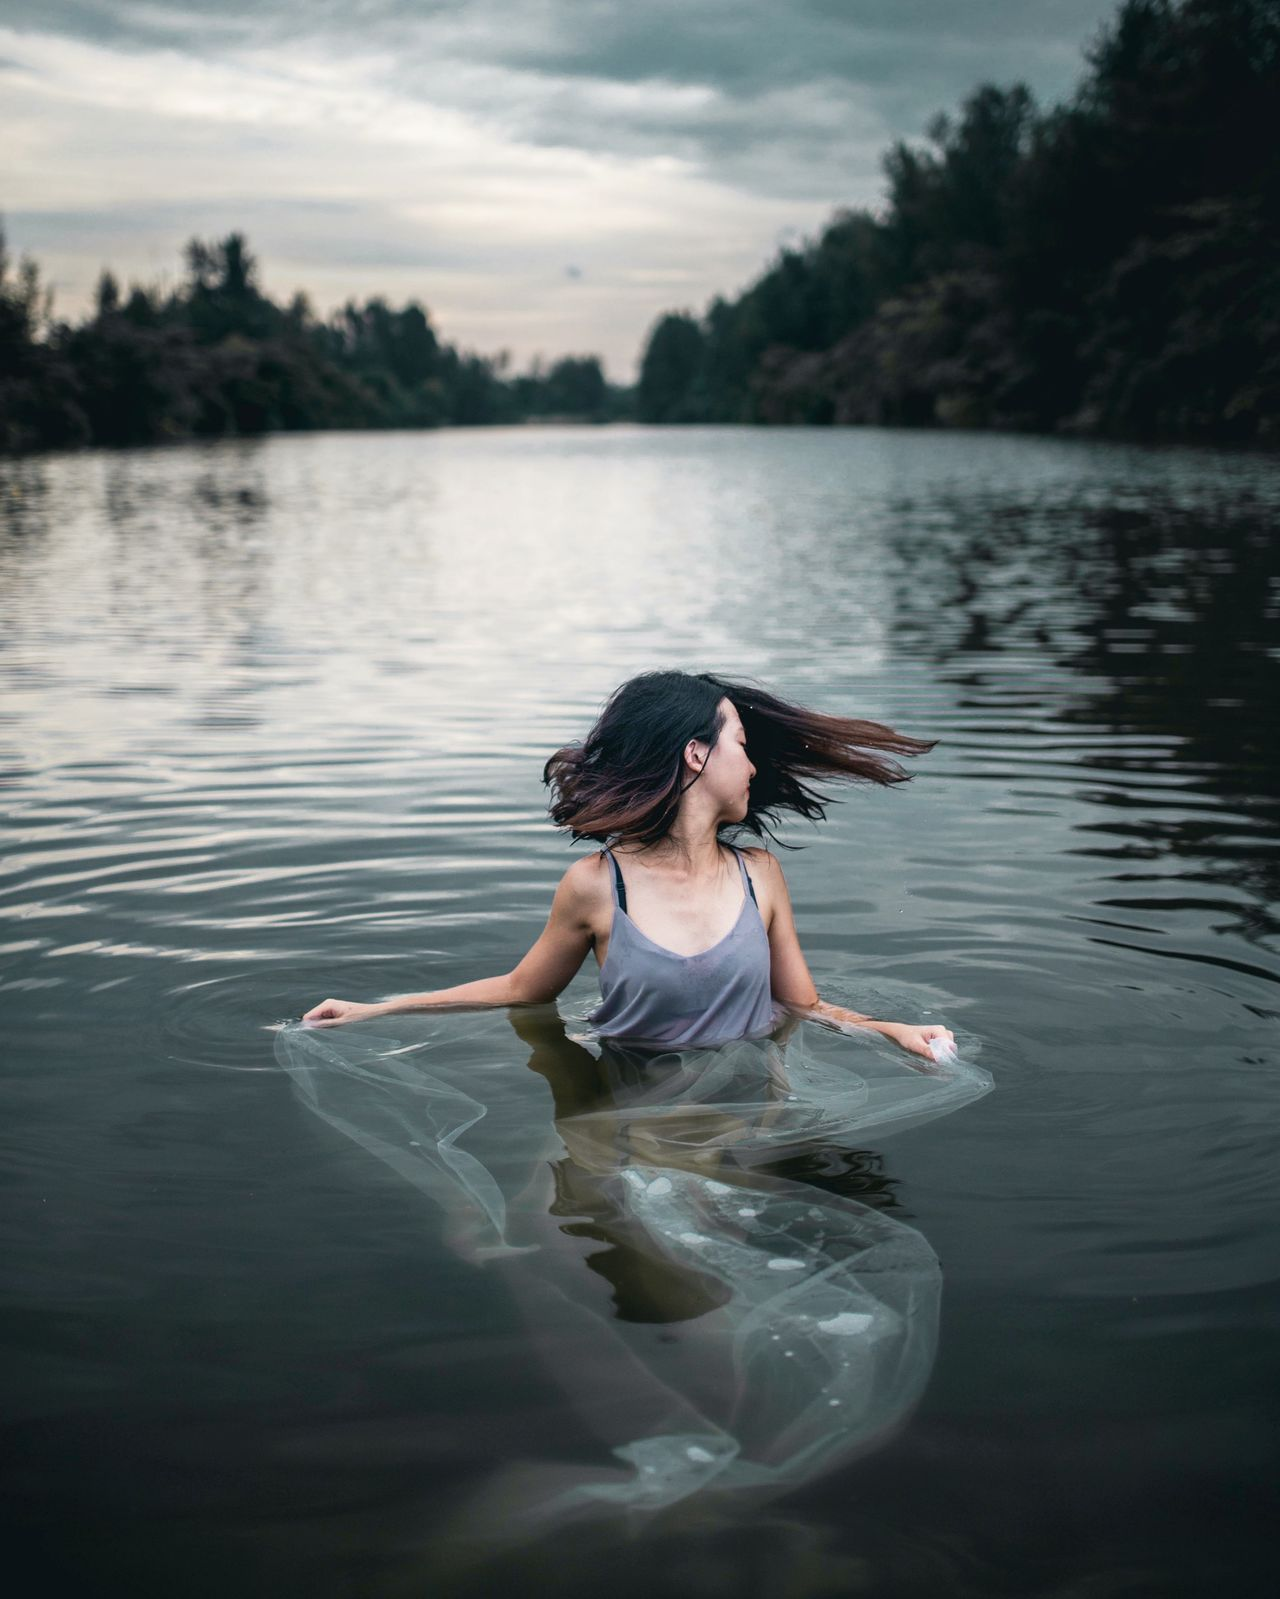 genie in the water Portrait Photography Portrait Of A Woman Portrait Of A Girl Portrait Landscape_Collection Landscape Landscape_photography Landscapes EyeEm Best Edits EyeEm Best Shots Eye4photography  Fine Art Photography Surreal Surrealism Reflection Reflection_collection Water Reflections Water_collection Faces Of EyeEm Natural Light Portrait Women Of EyeEm Women Nature Photography Welcome To Black The Portraitist - 2017 EyeEm Awards